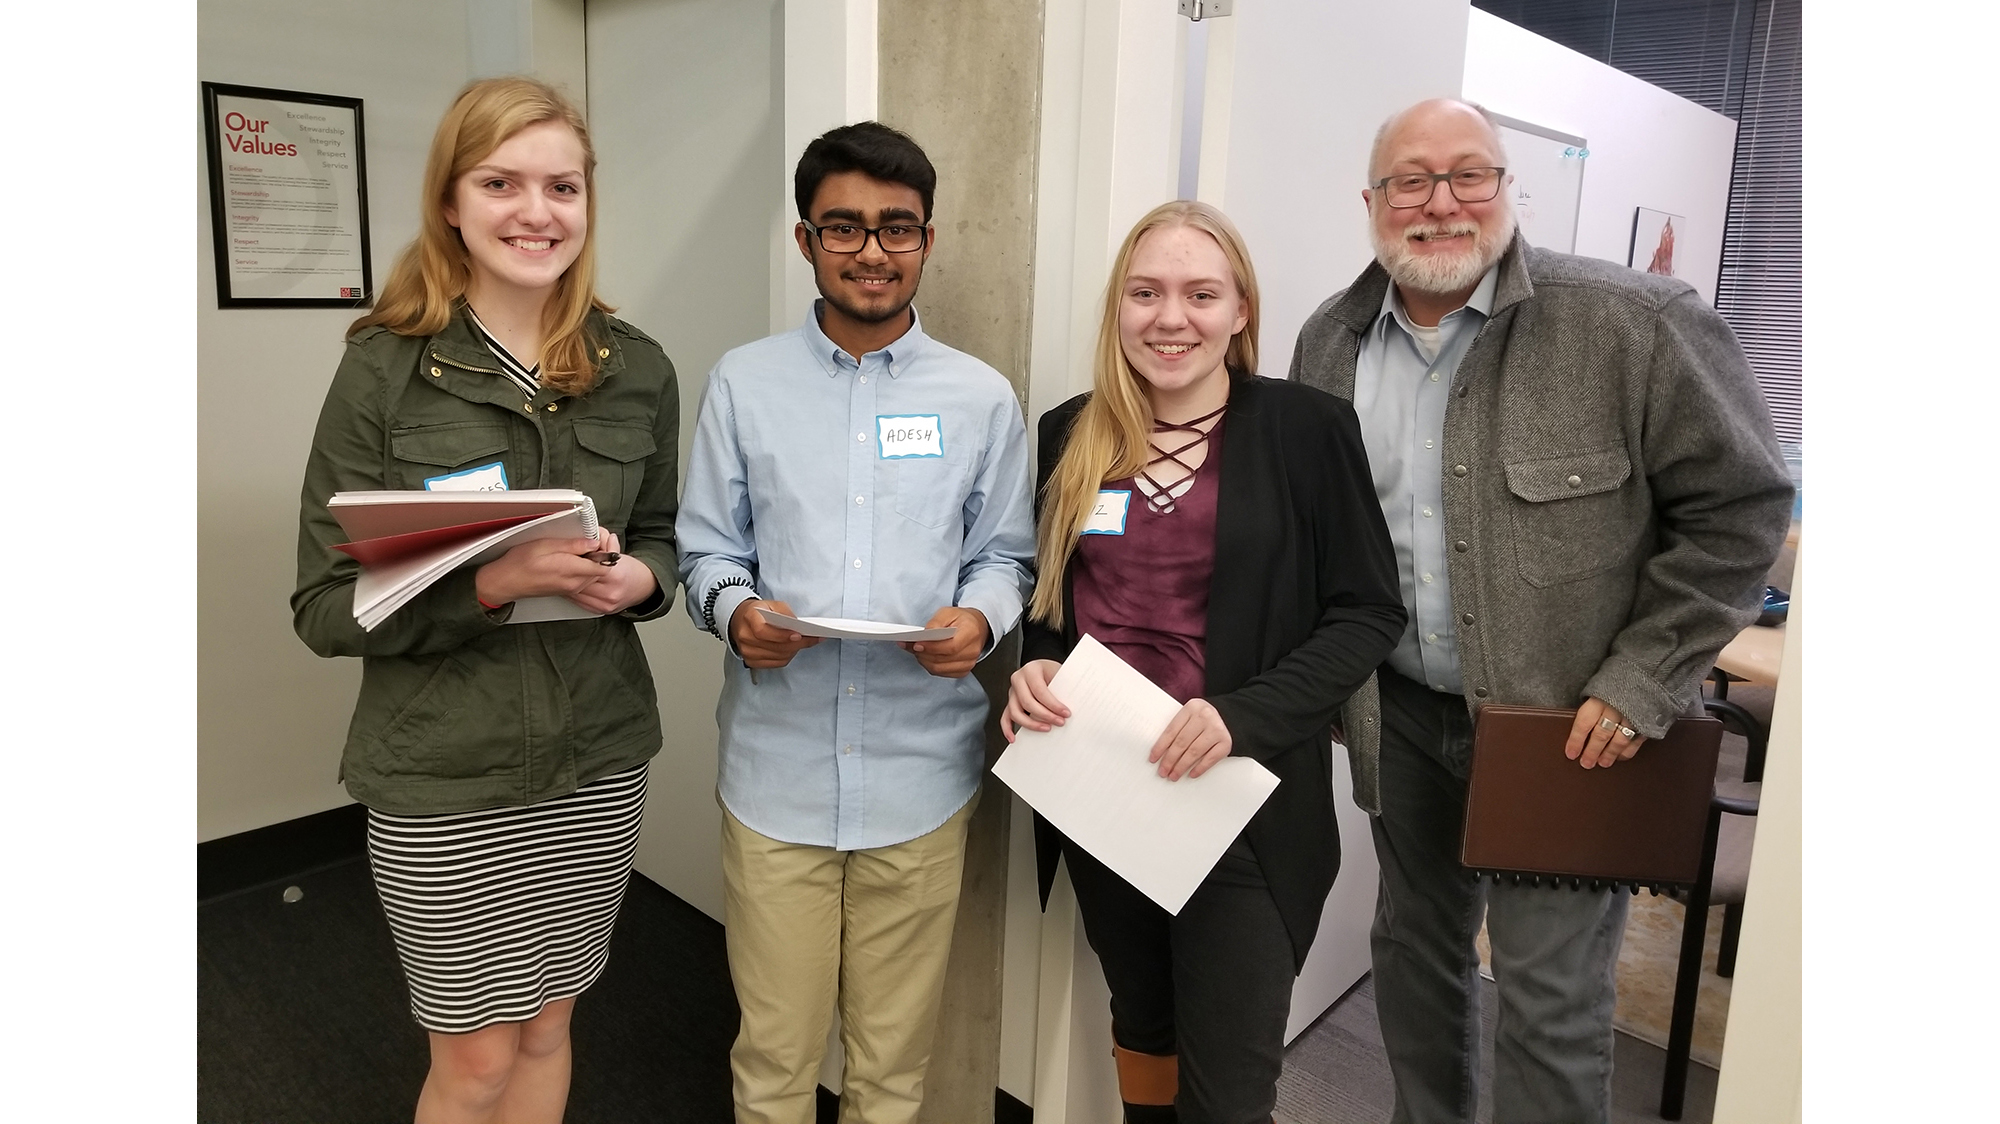 Frances Mack, Adesh Tiwari, Elizabeth Schumacher, and Troy Smythe prepare to present the Junior Curator exhibition proposal to Karol Wight, 2017